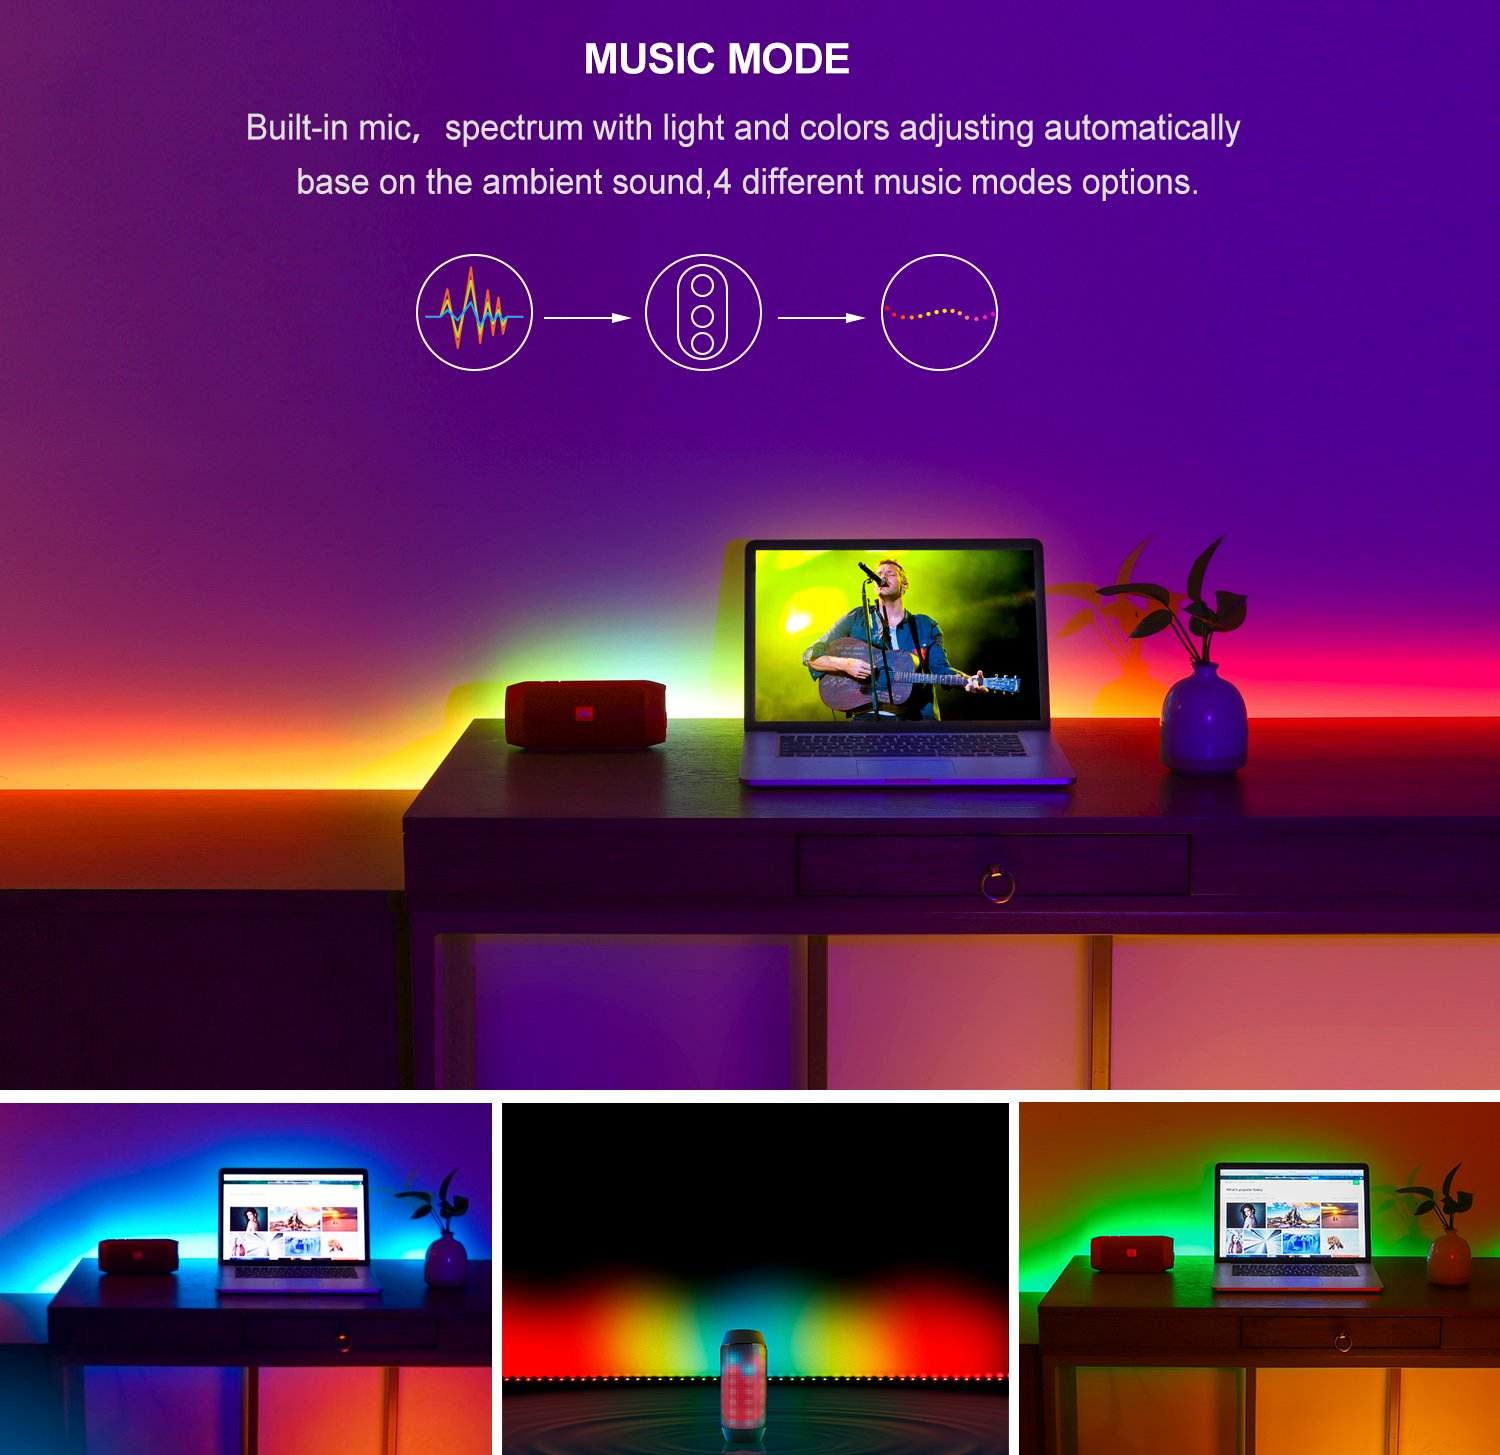 Led Options Solid Color Leds Dreamcolor Strip Lights With App Minger 66ft 2m Usb Light Built In Digital Ic 5050 Rgb Changing Music Ip65